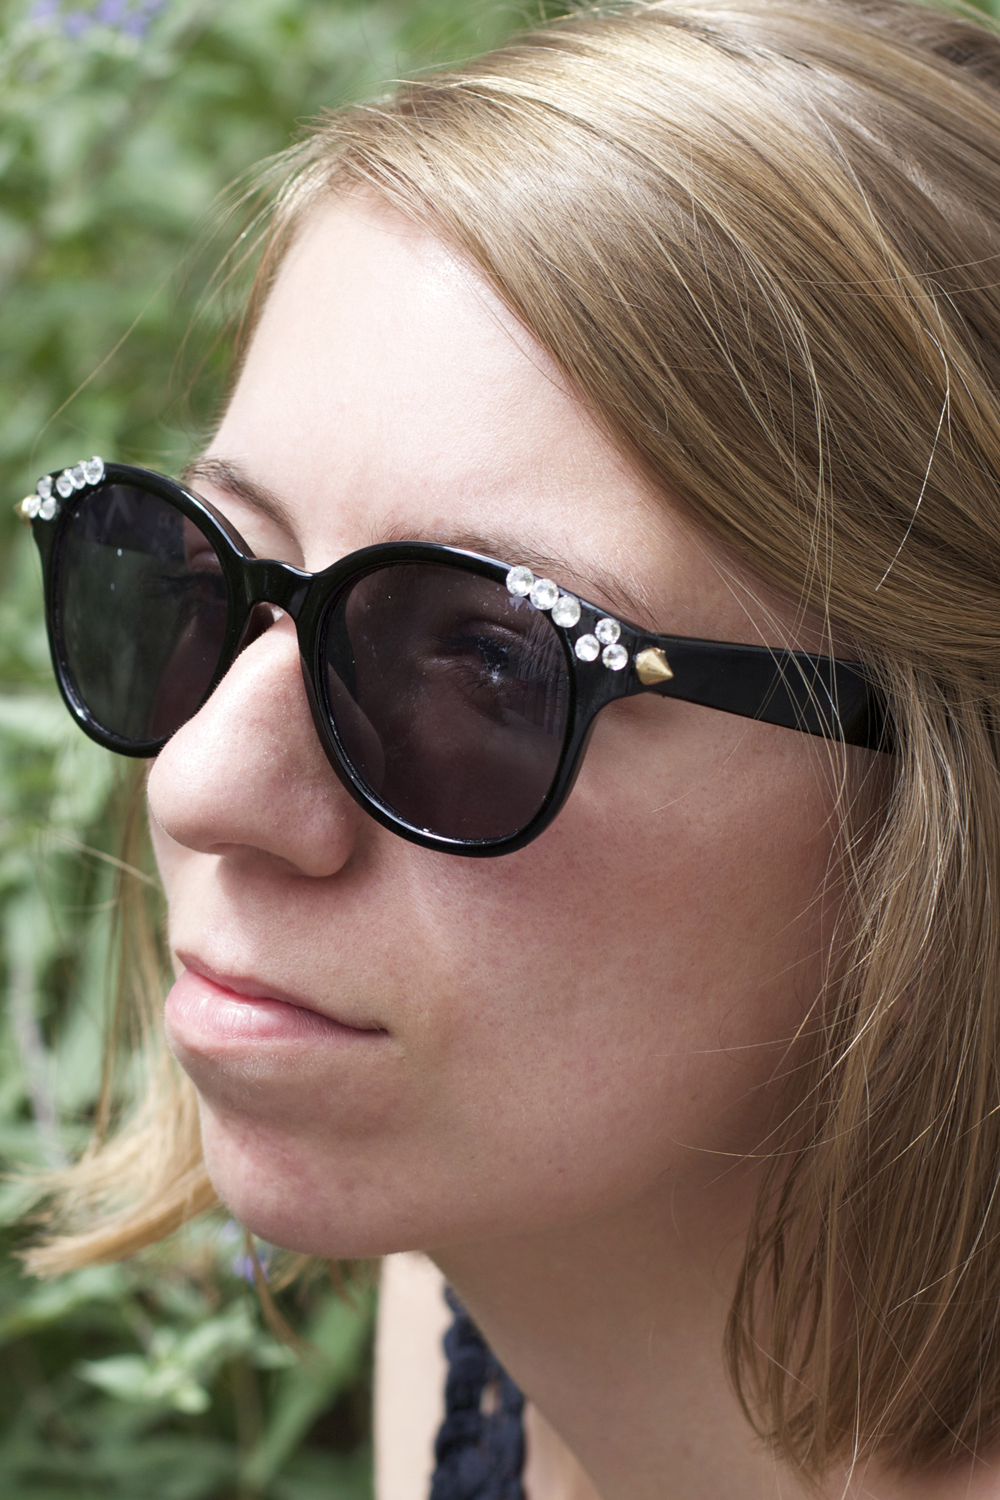 DIY: Sonnenbrille pimpen | we love handmade